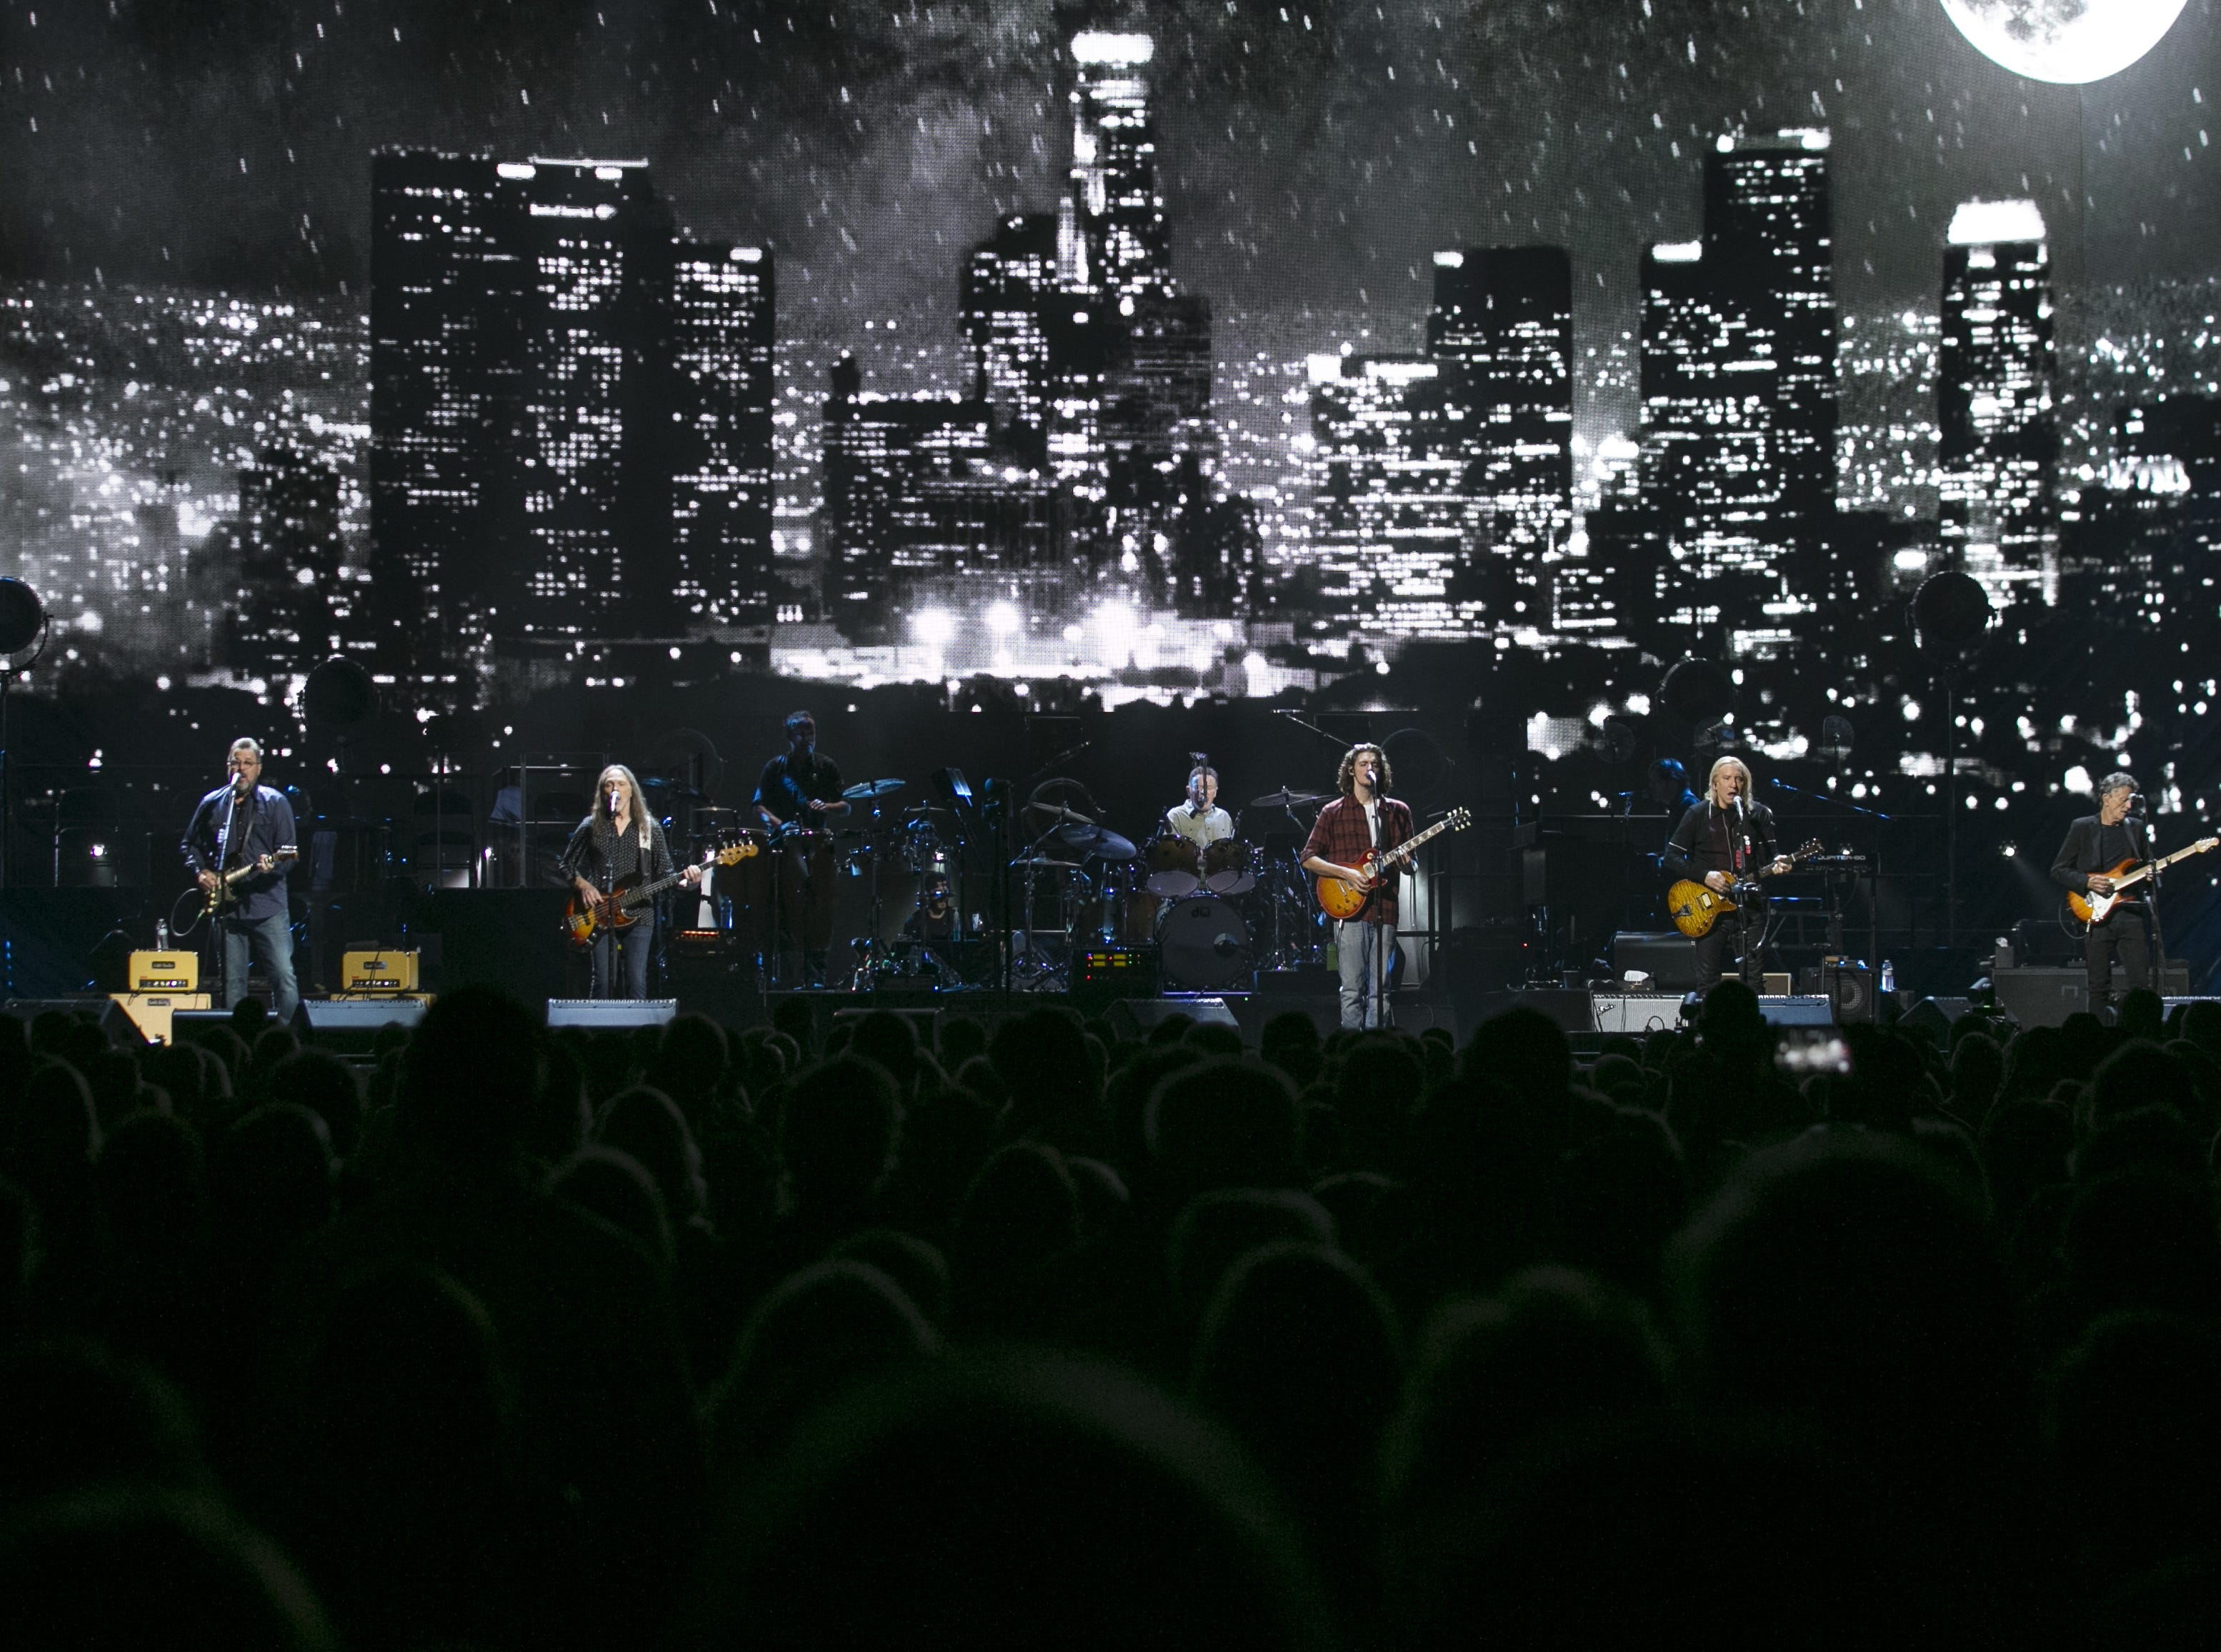 The Eagles perform at Talking Stick Resort Arena in Phoenix on Sat. Sep. 8, 2018.